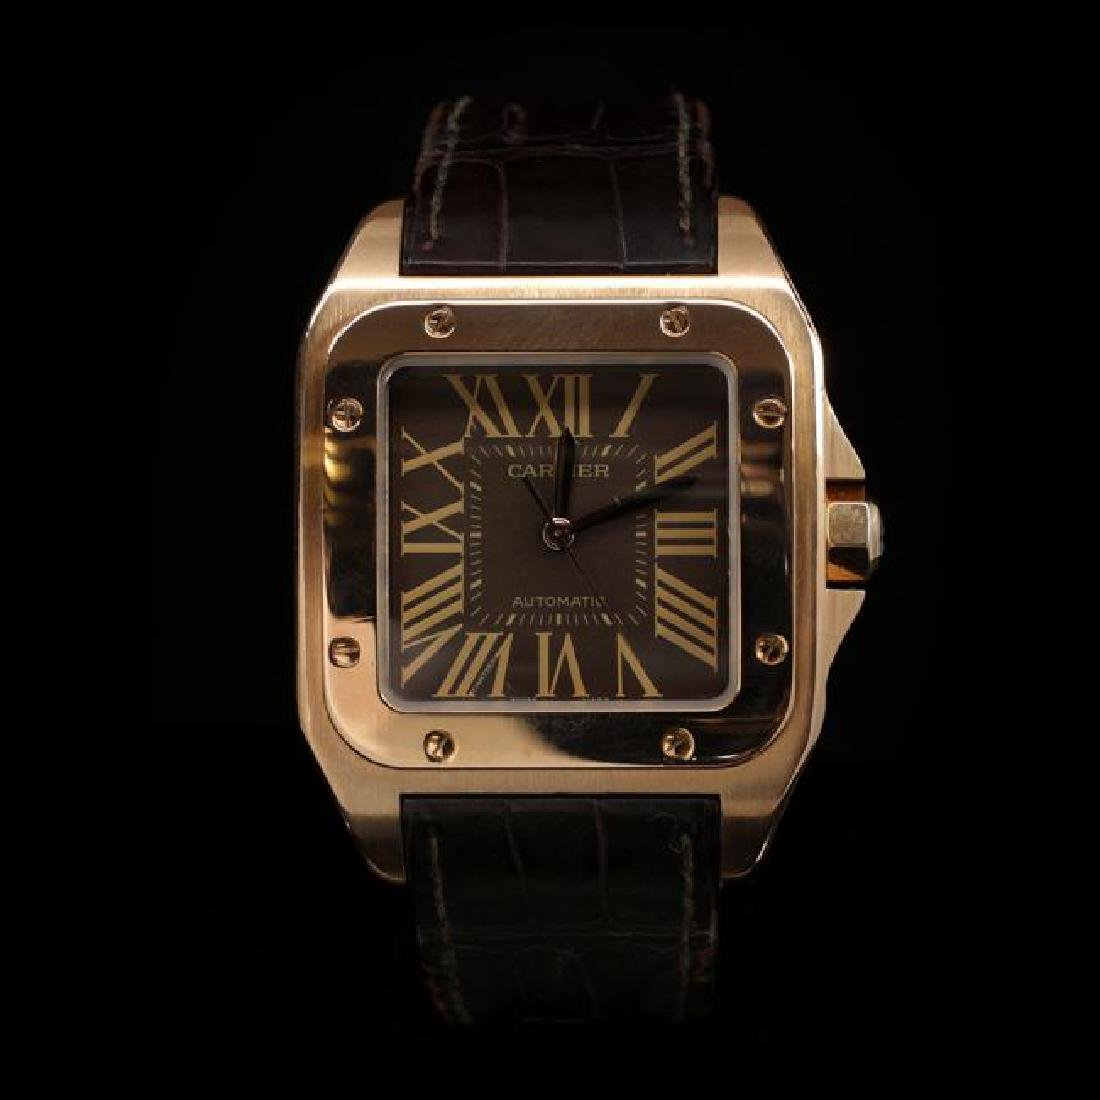 Cartier Santos 100mm in Rose Gold Limited Edition x/300